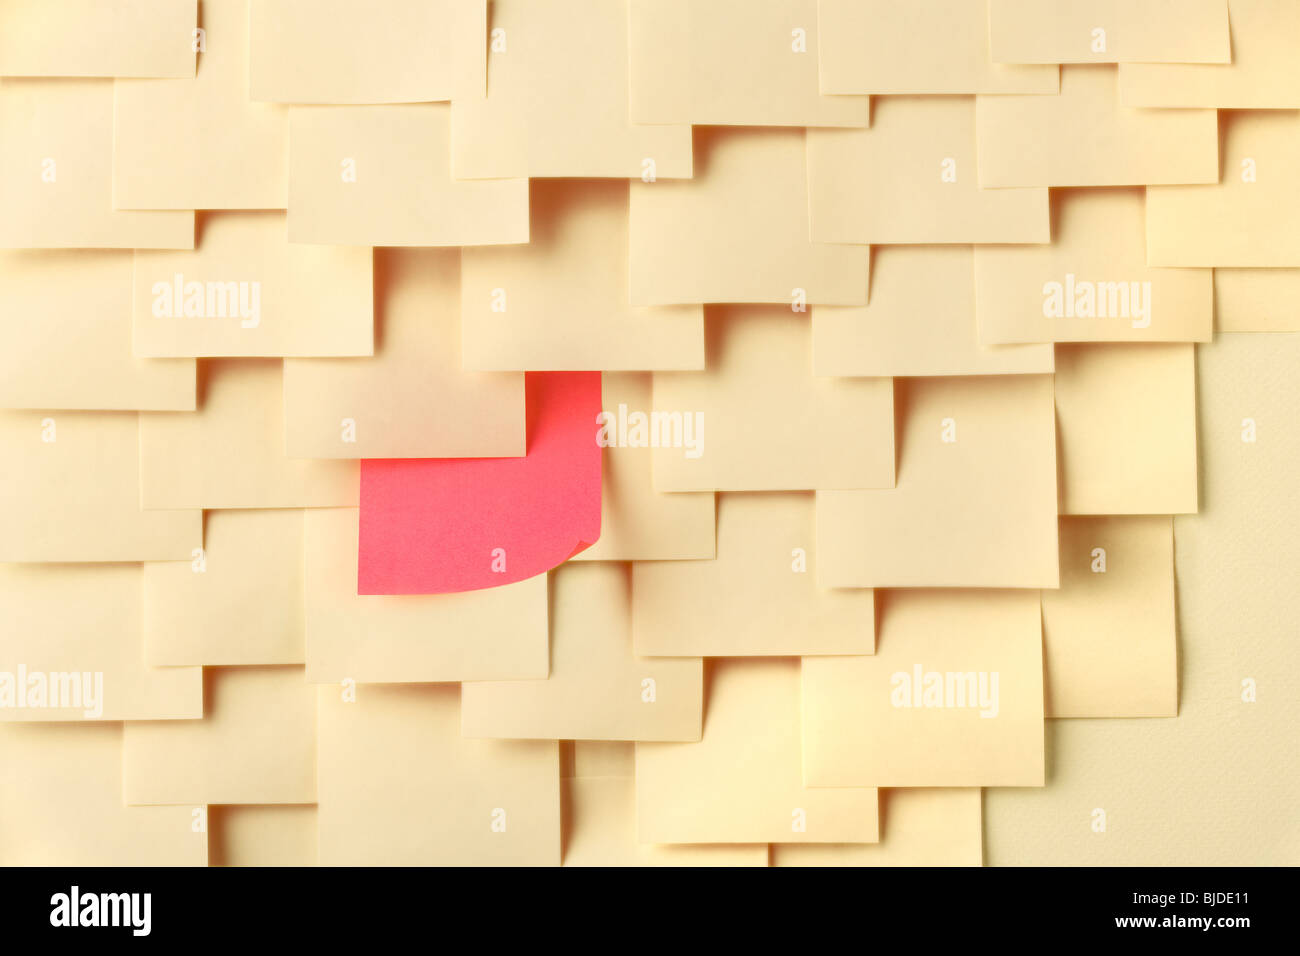 Arrange Postit notes with one of a different color - Stock Image